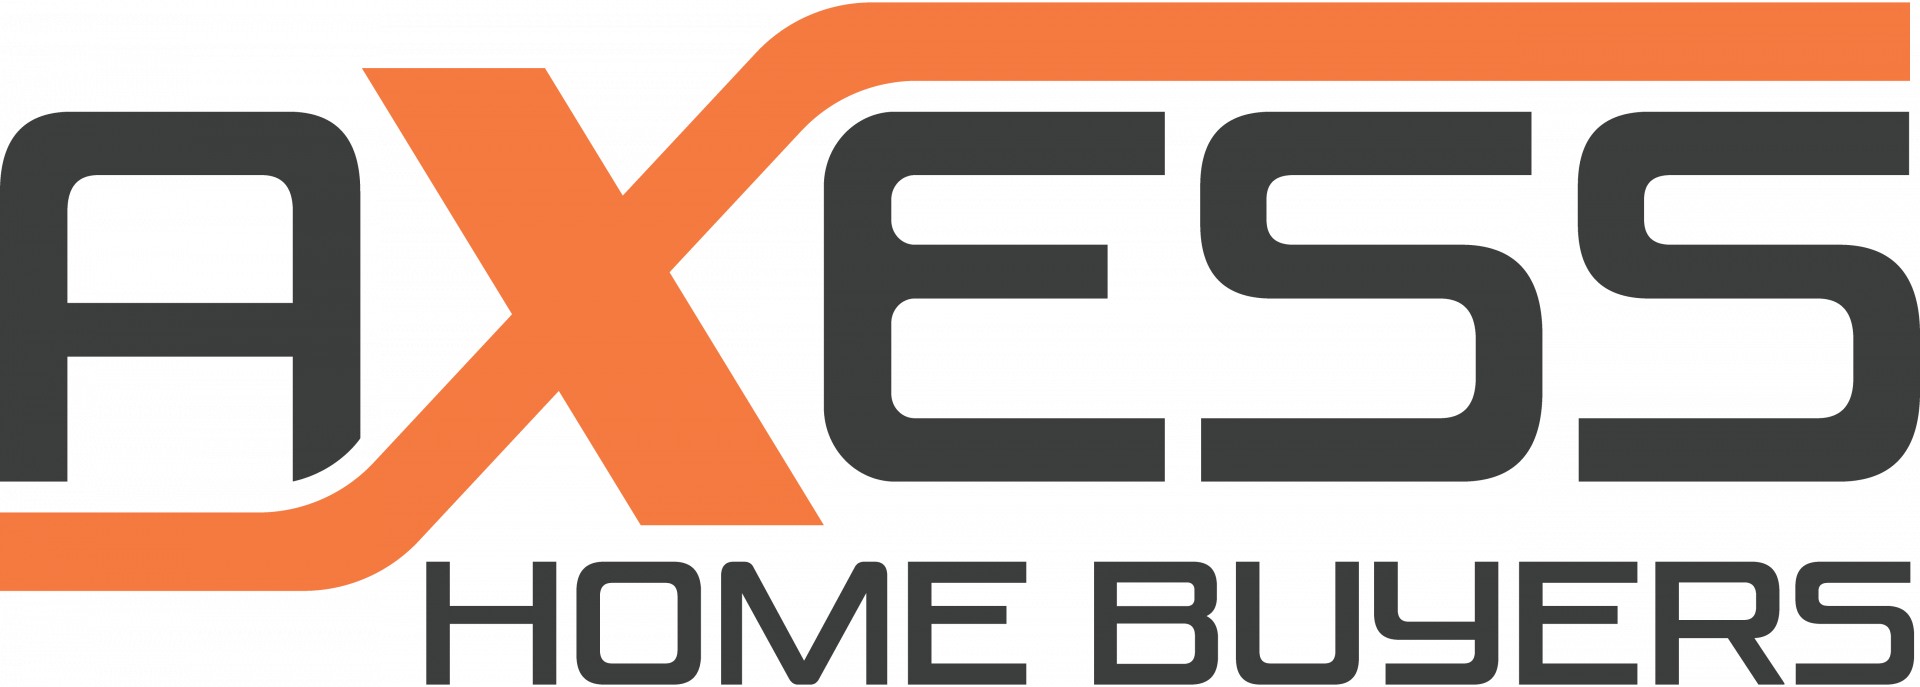 Axess Home Buyers is a Leading Homebuyer in Salt Lake City, UT